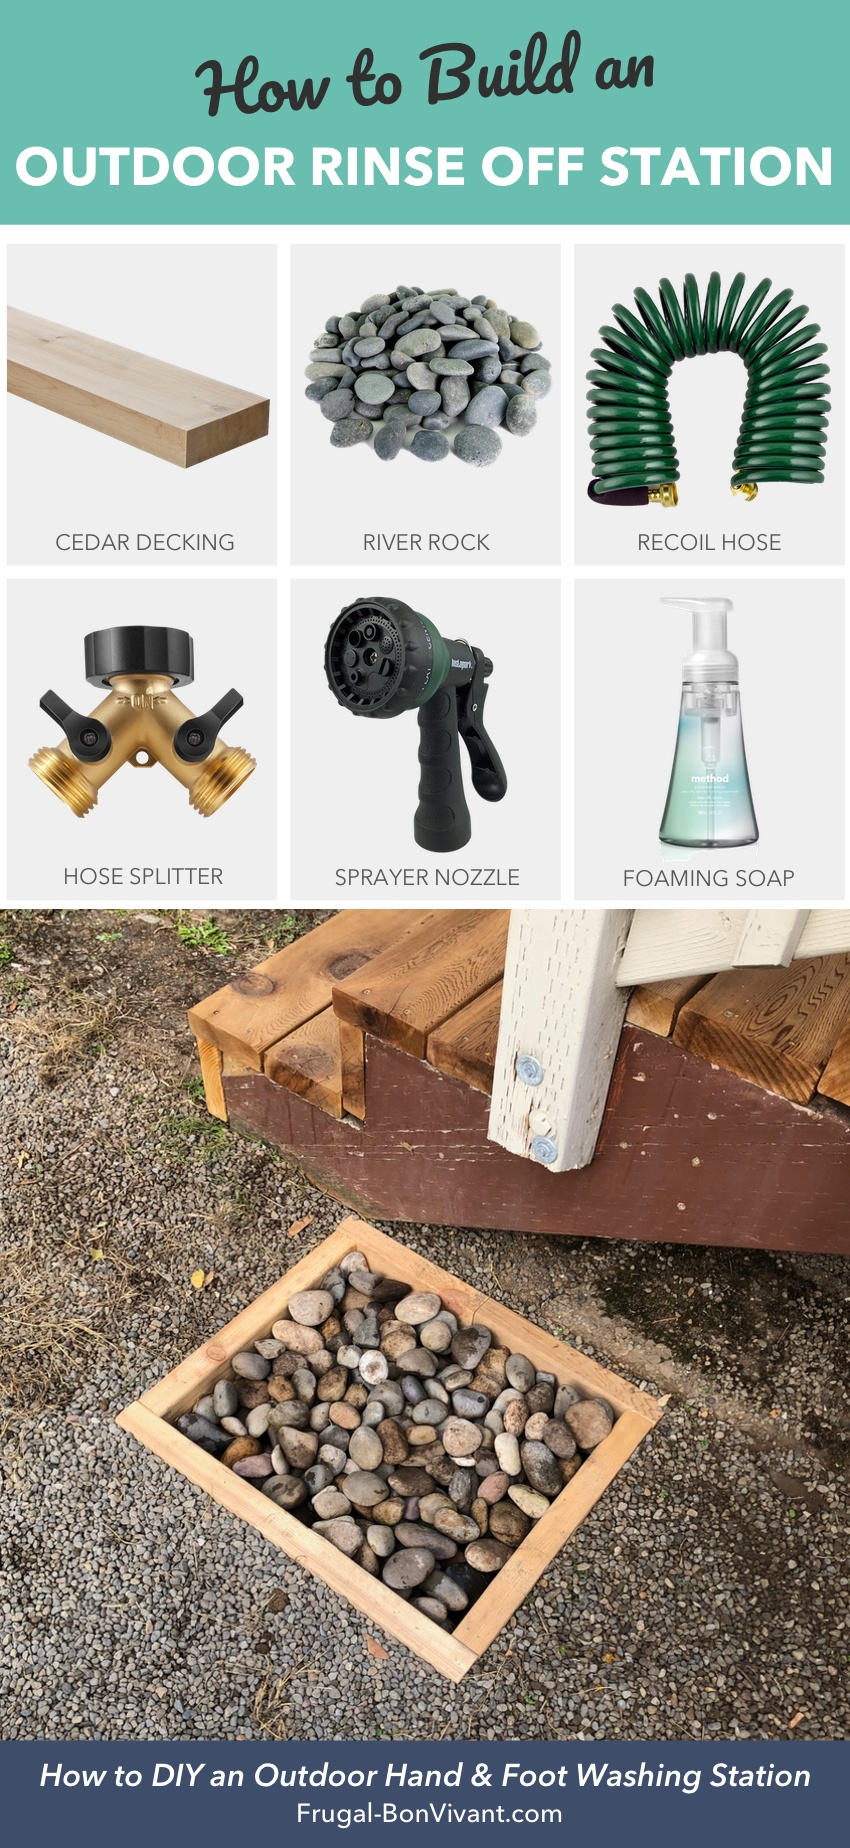 How to build an outdoor rinse off station DIY project